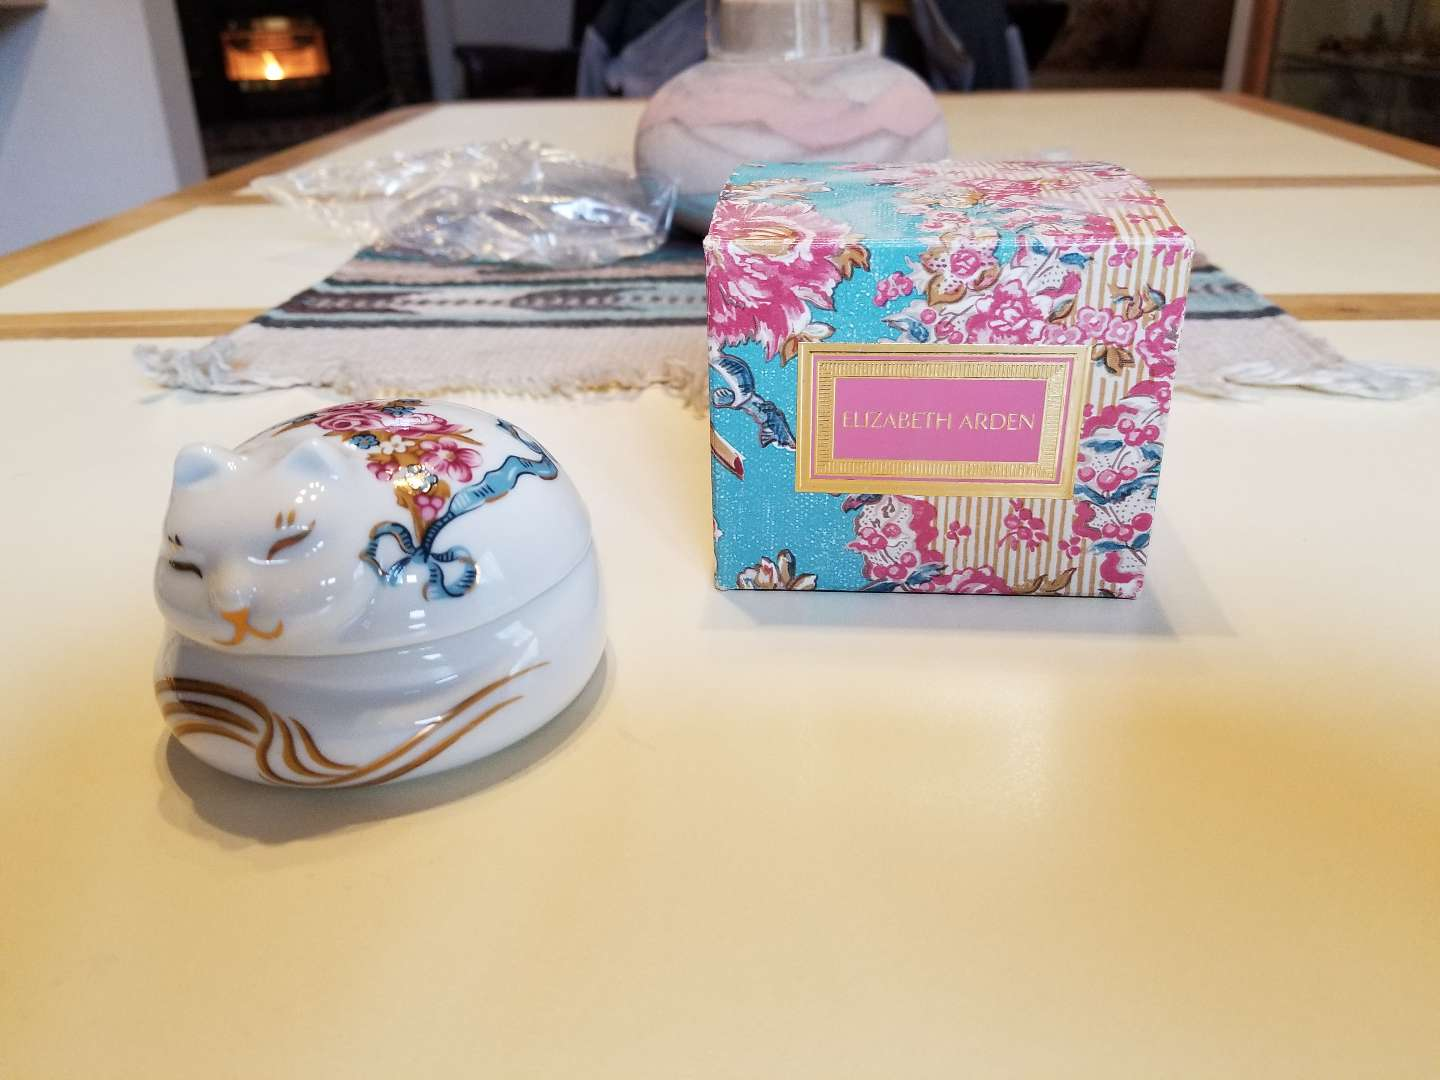 Photo NEVER USED VINTAGE 1980S ELIZABETH ARDEN SLEEPING CAT TRINKET BOX SCENTED CANDLE. PICK UP MIDDLEBORO ONLY